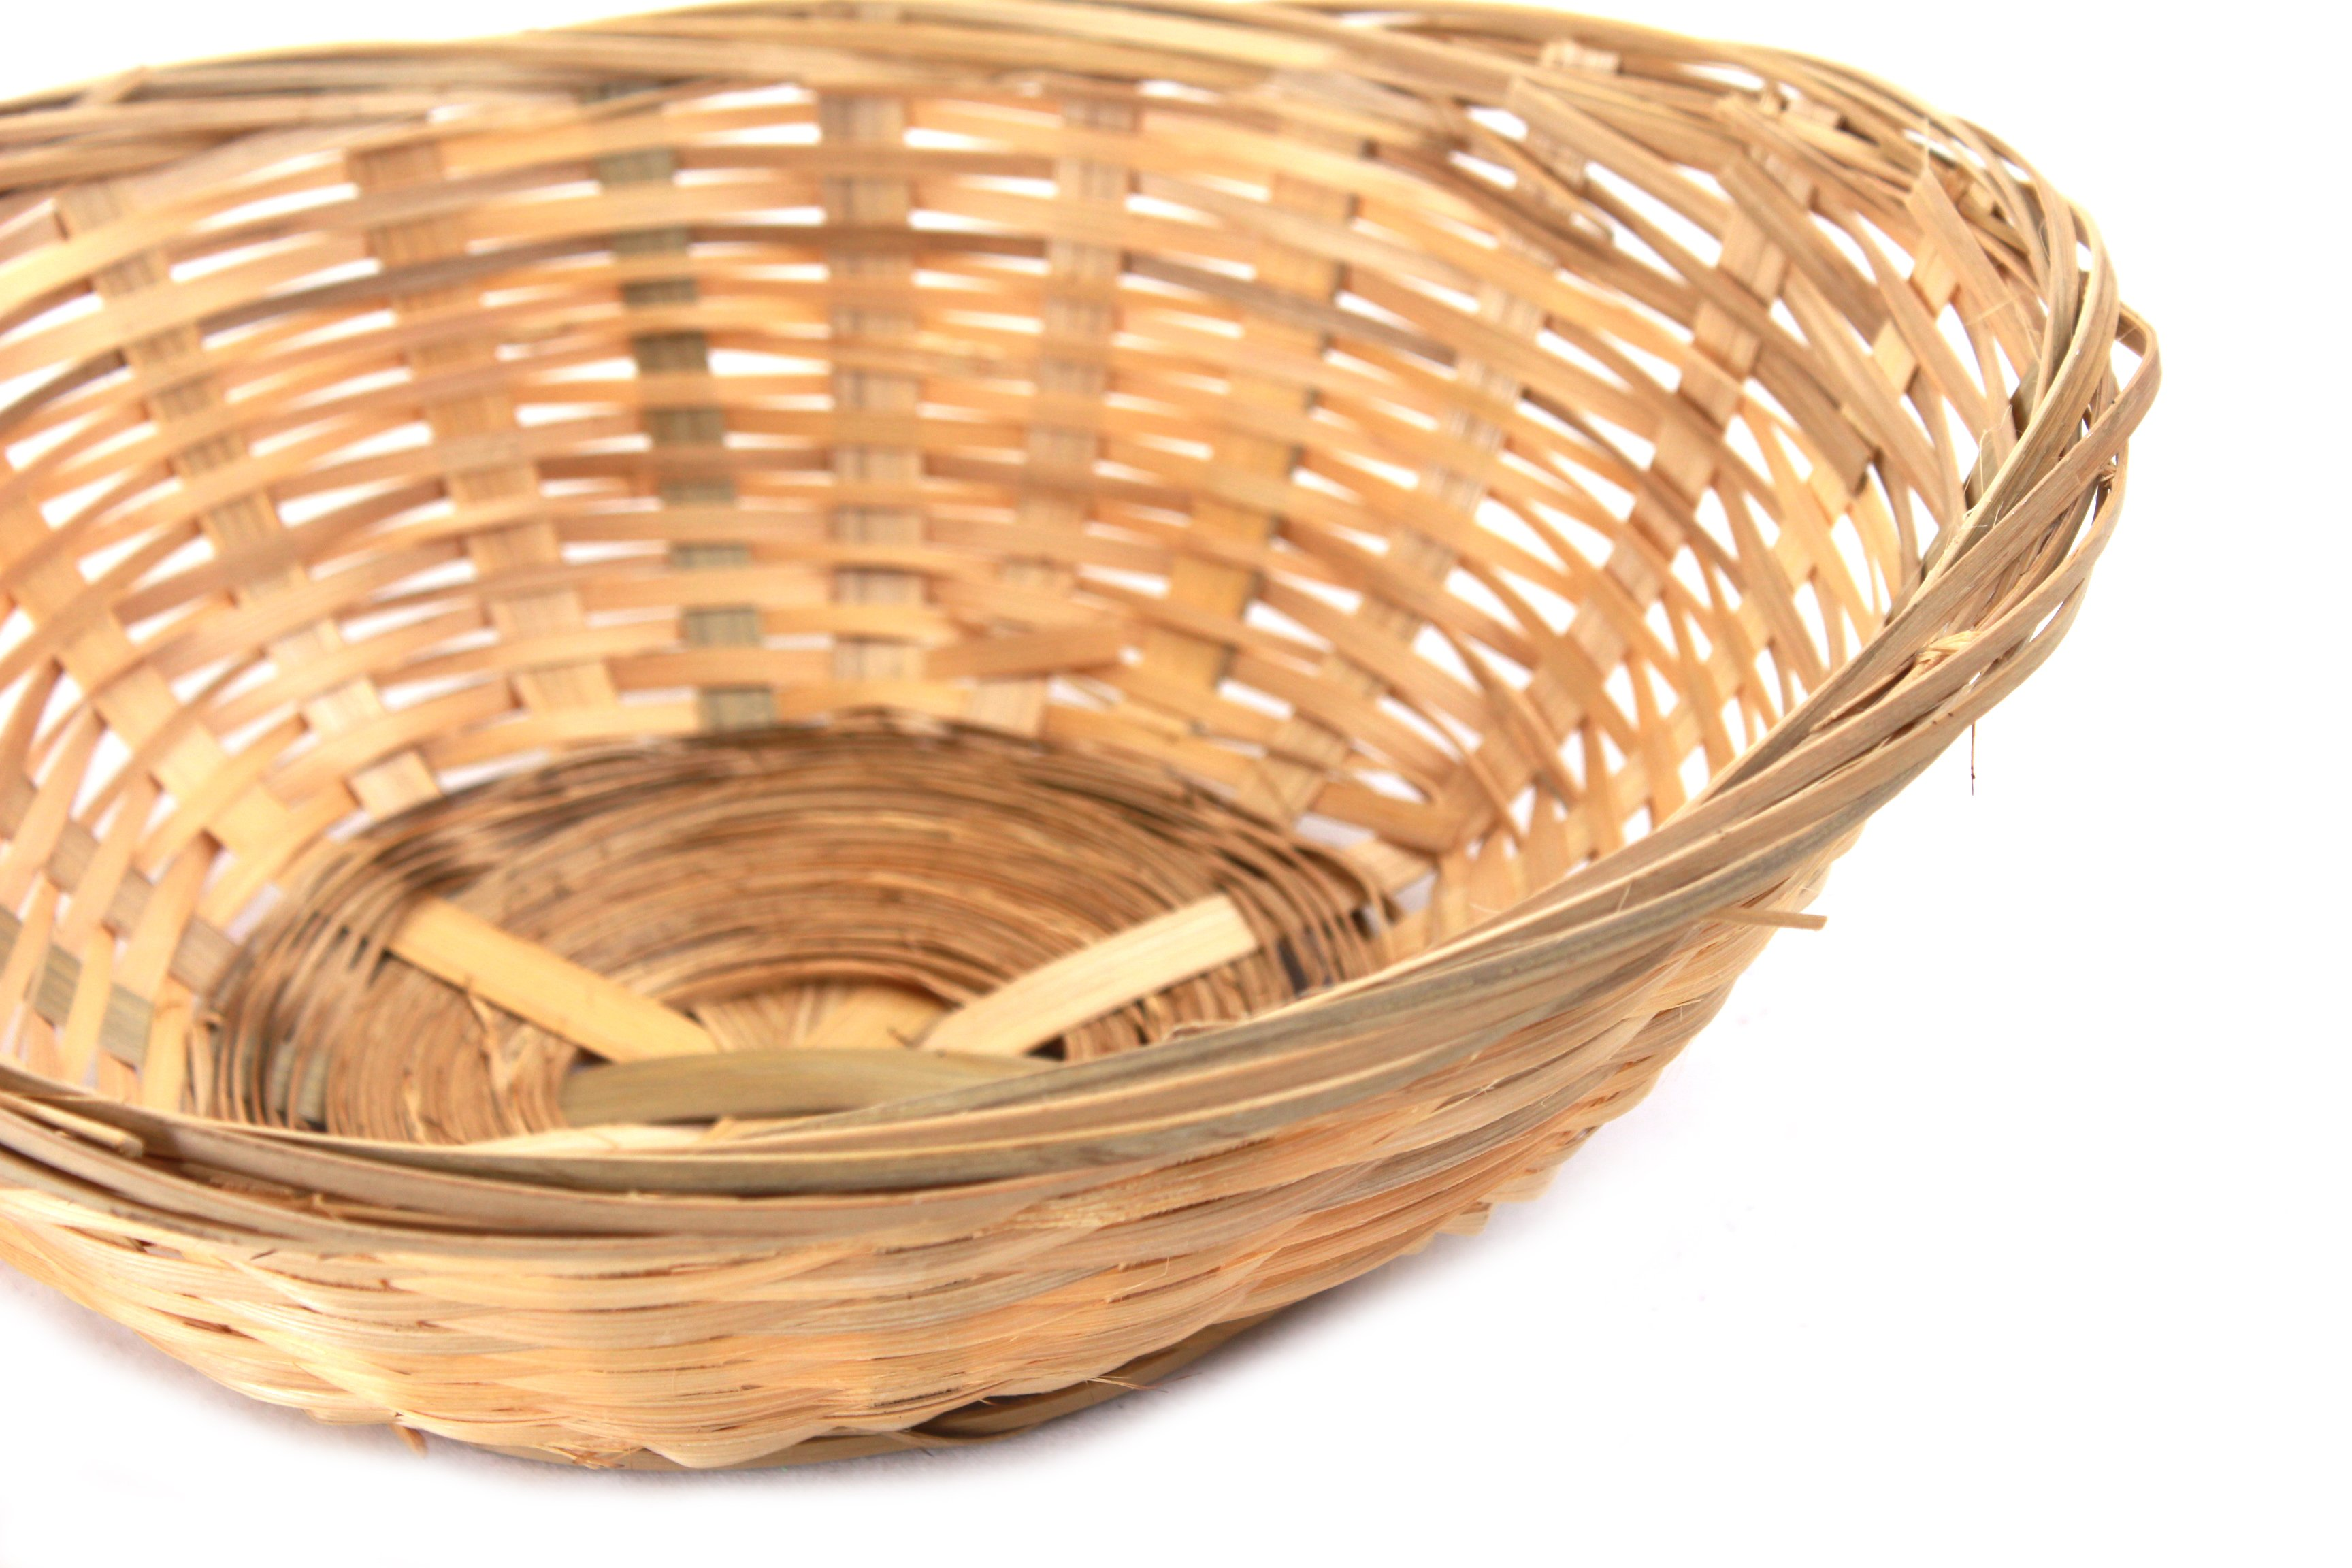 Oval Bamboo Bread Baskets close